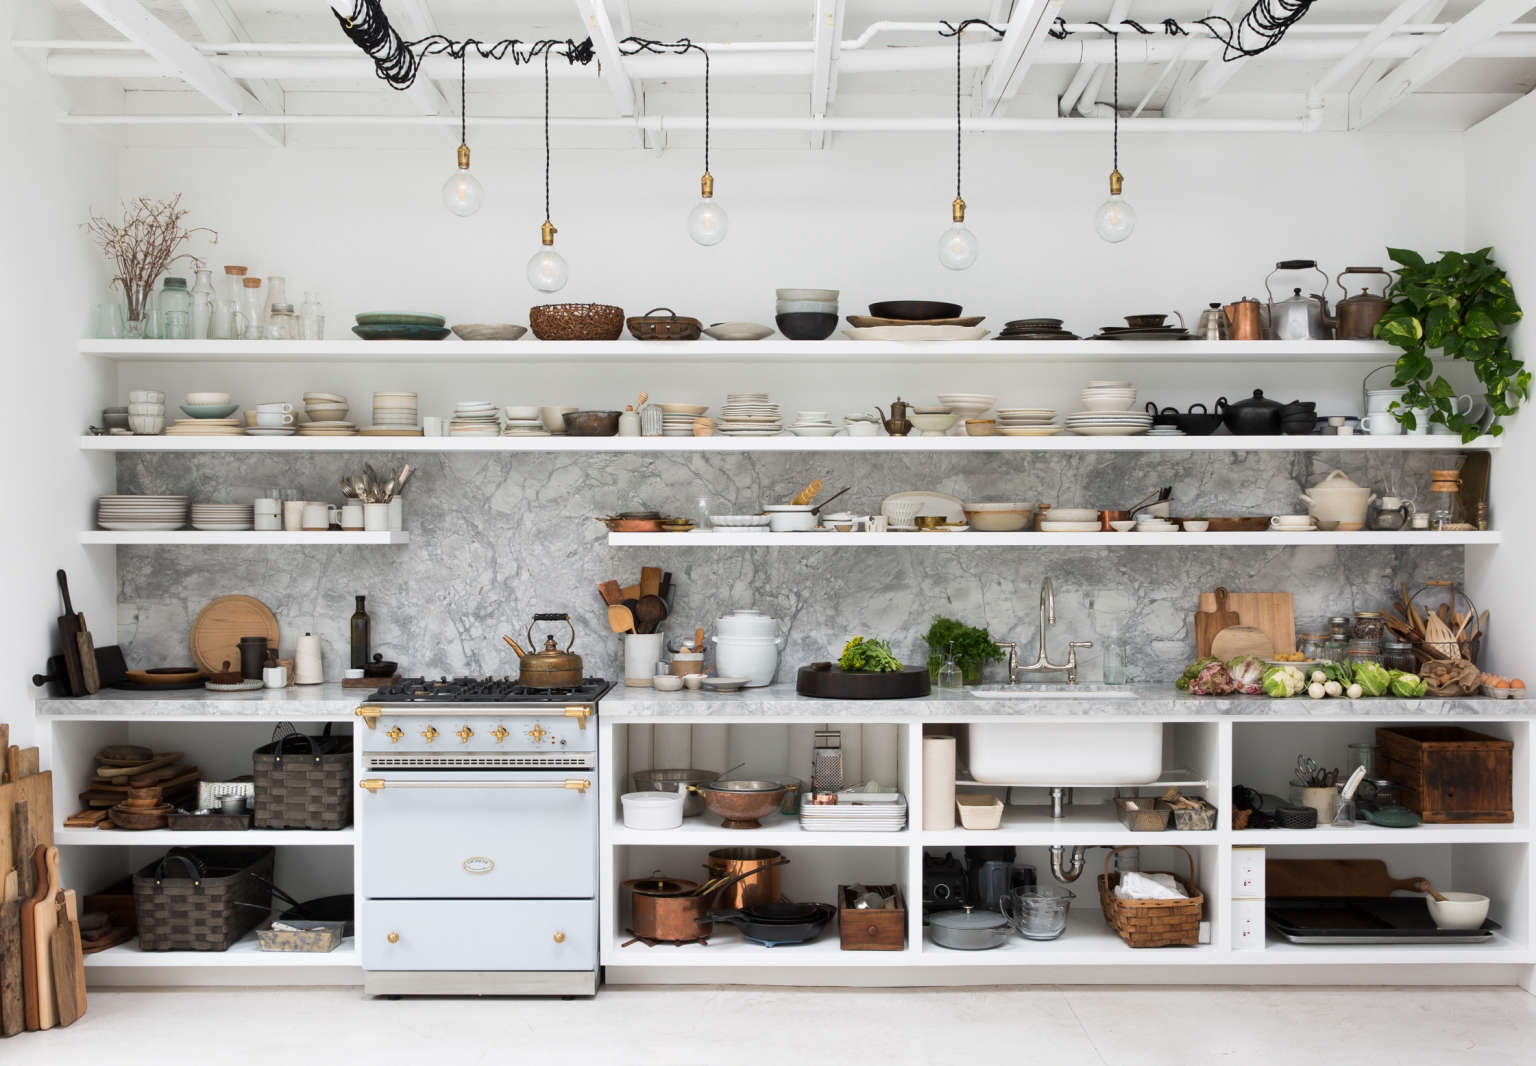 backyard kitchens wall pictures for kitchen of the week a in berkeley ceramics we like formula that photographers and stylists apply to their own simple trend proof bones plus ad hoc lighting stacks